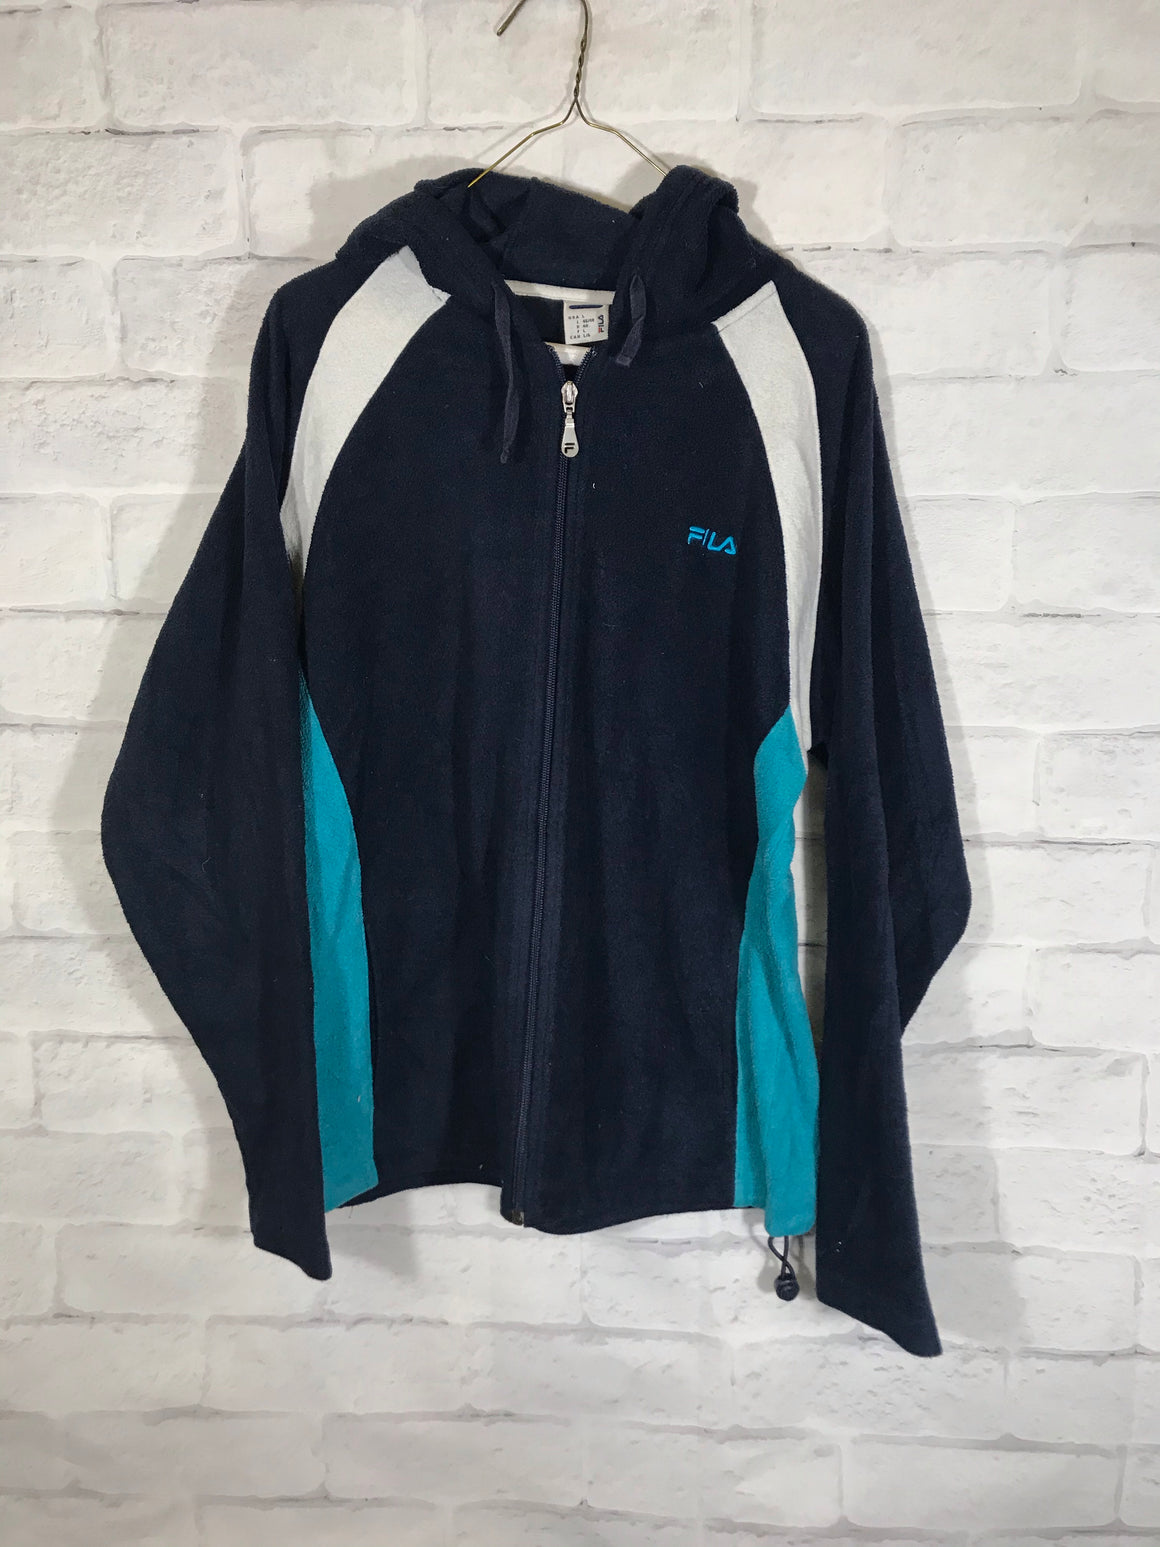 Fila Fullzip sweater track jacket SZ mens Large